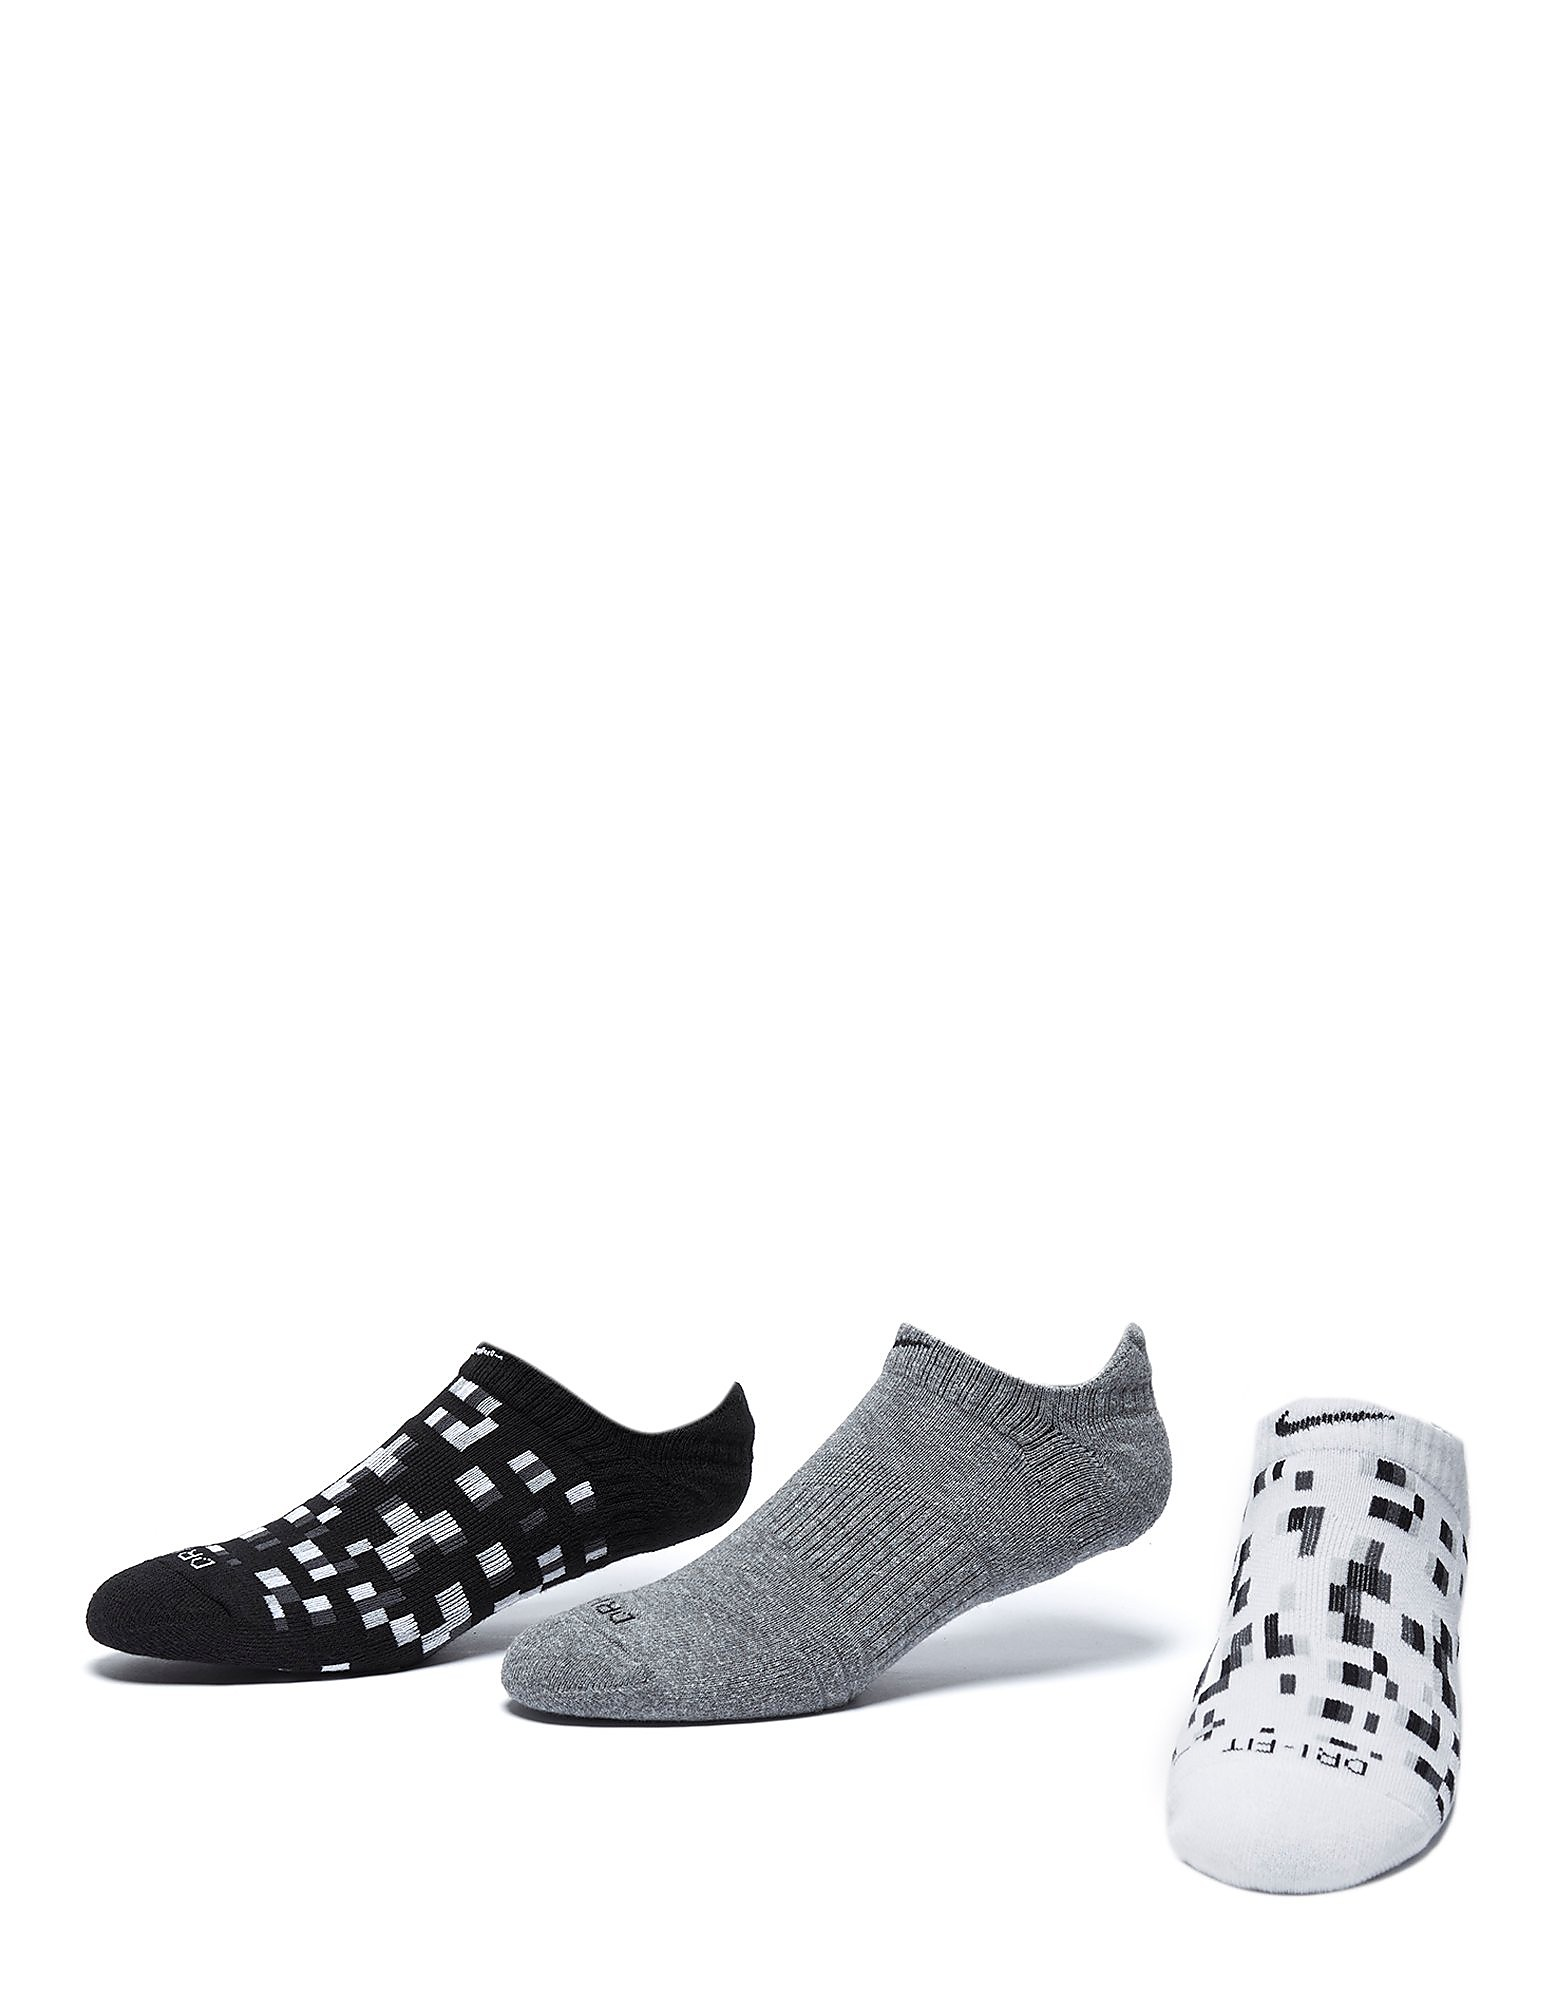 Nike Dry Graphic No-Show Socks (3 Pack)